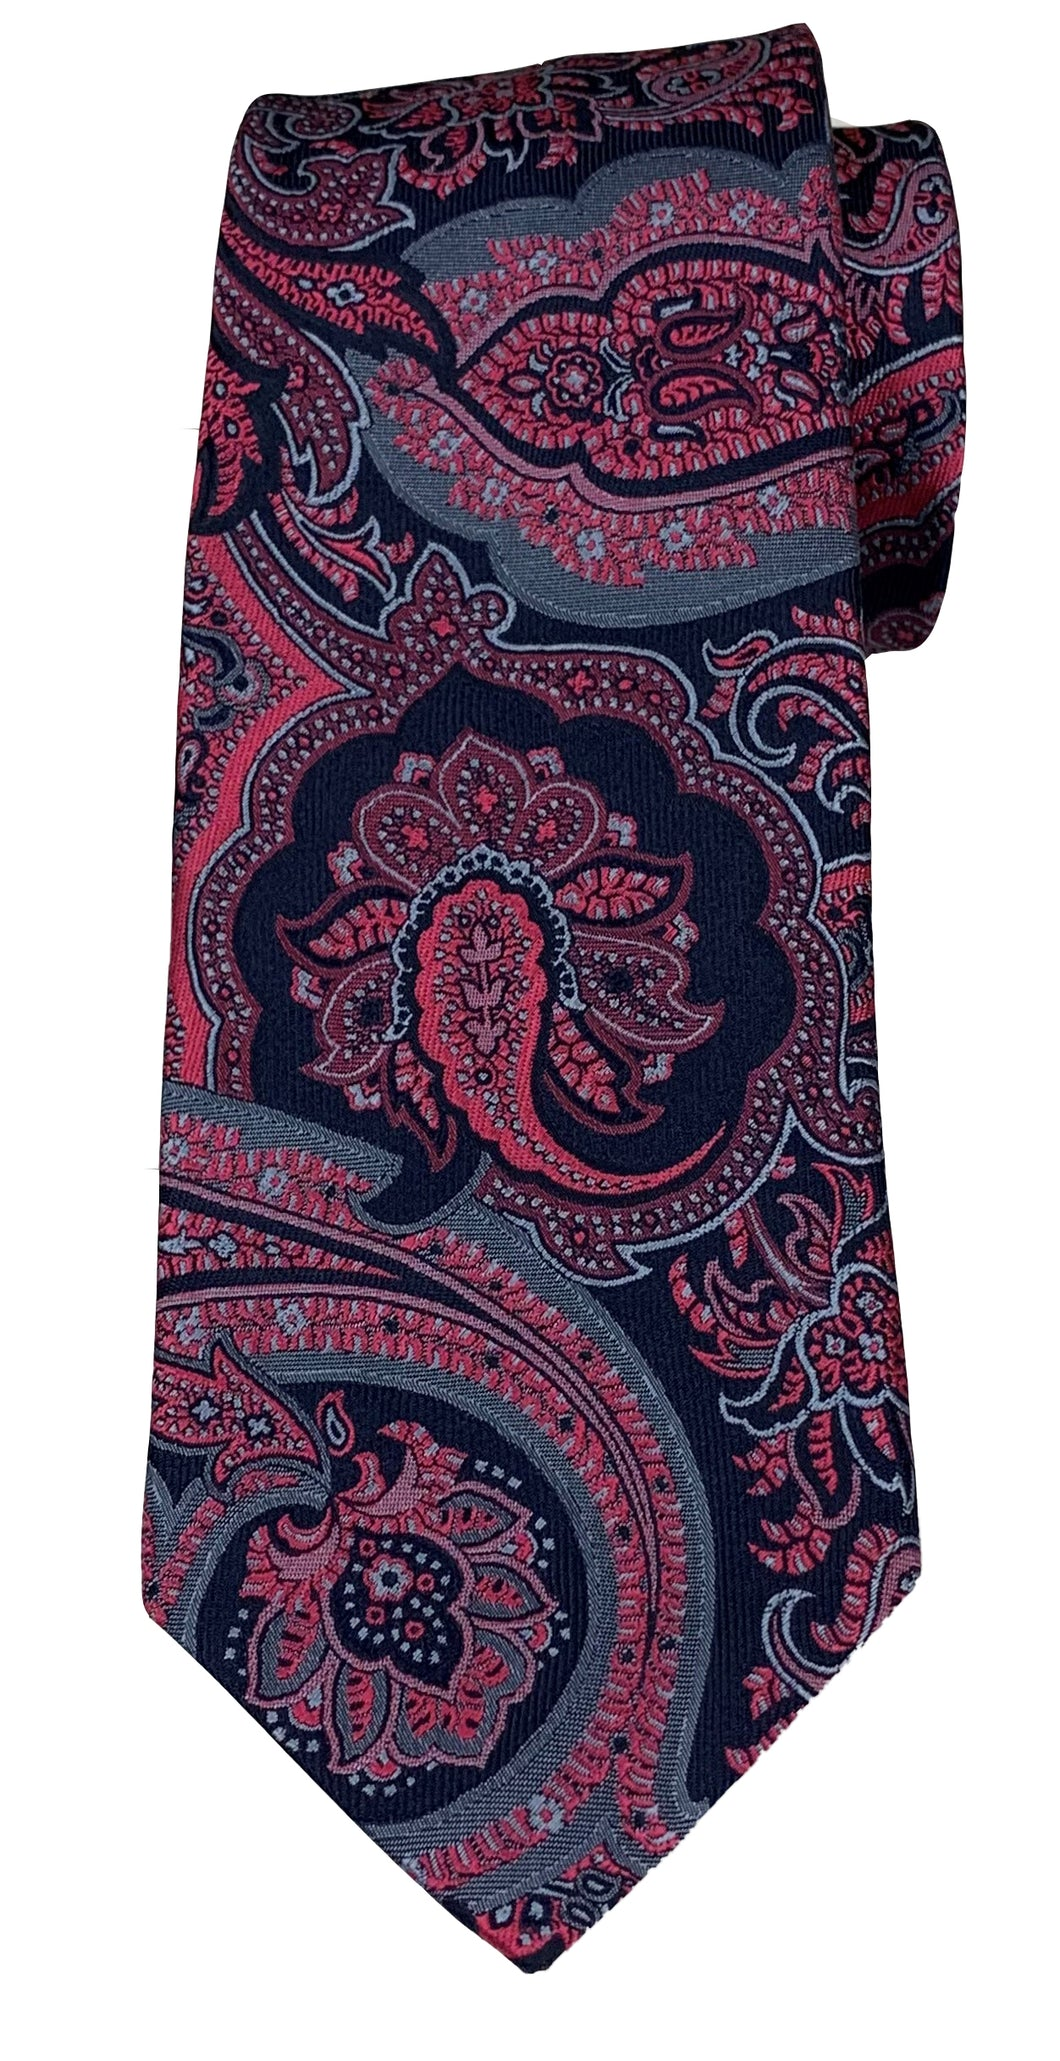 JZ RICHARDS Pink and Navy Paisley